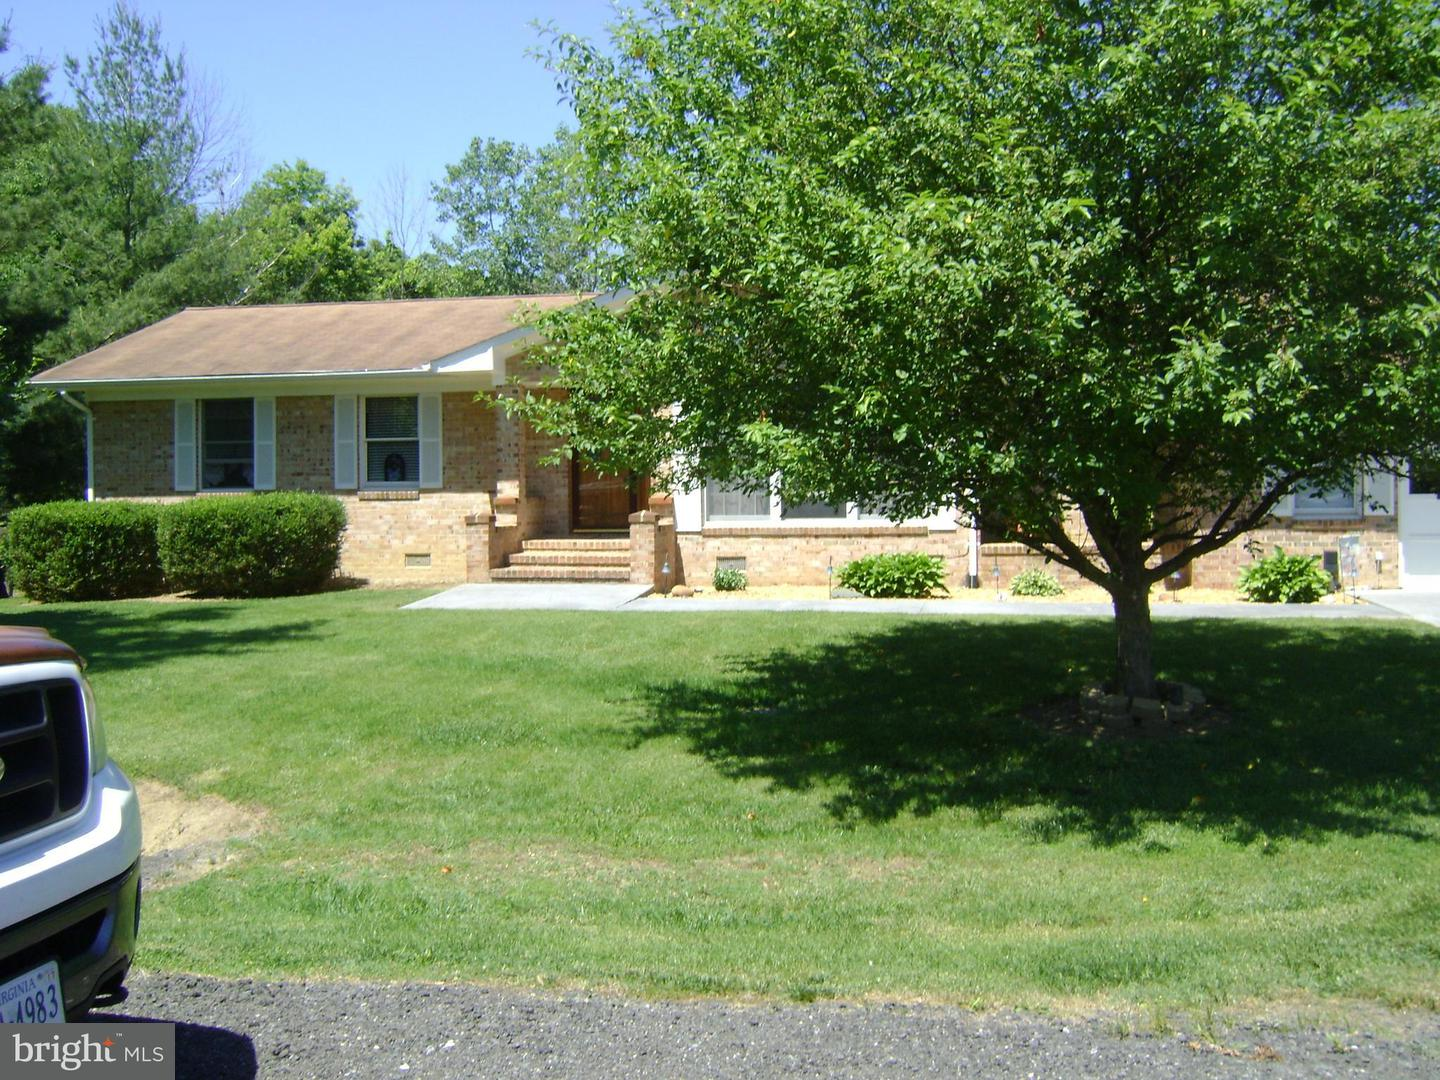 Other Residential for Rent at 294 S Loudoun St Strasburg, Virginia 22657 United States